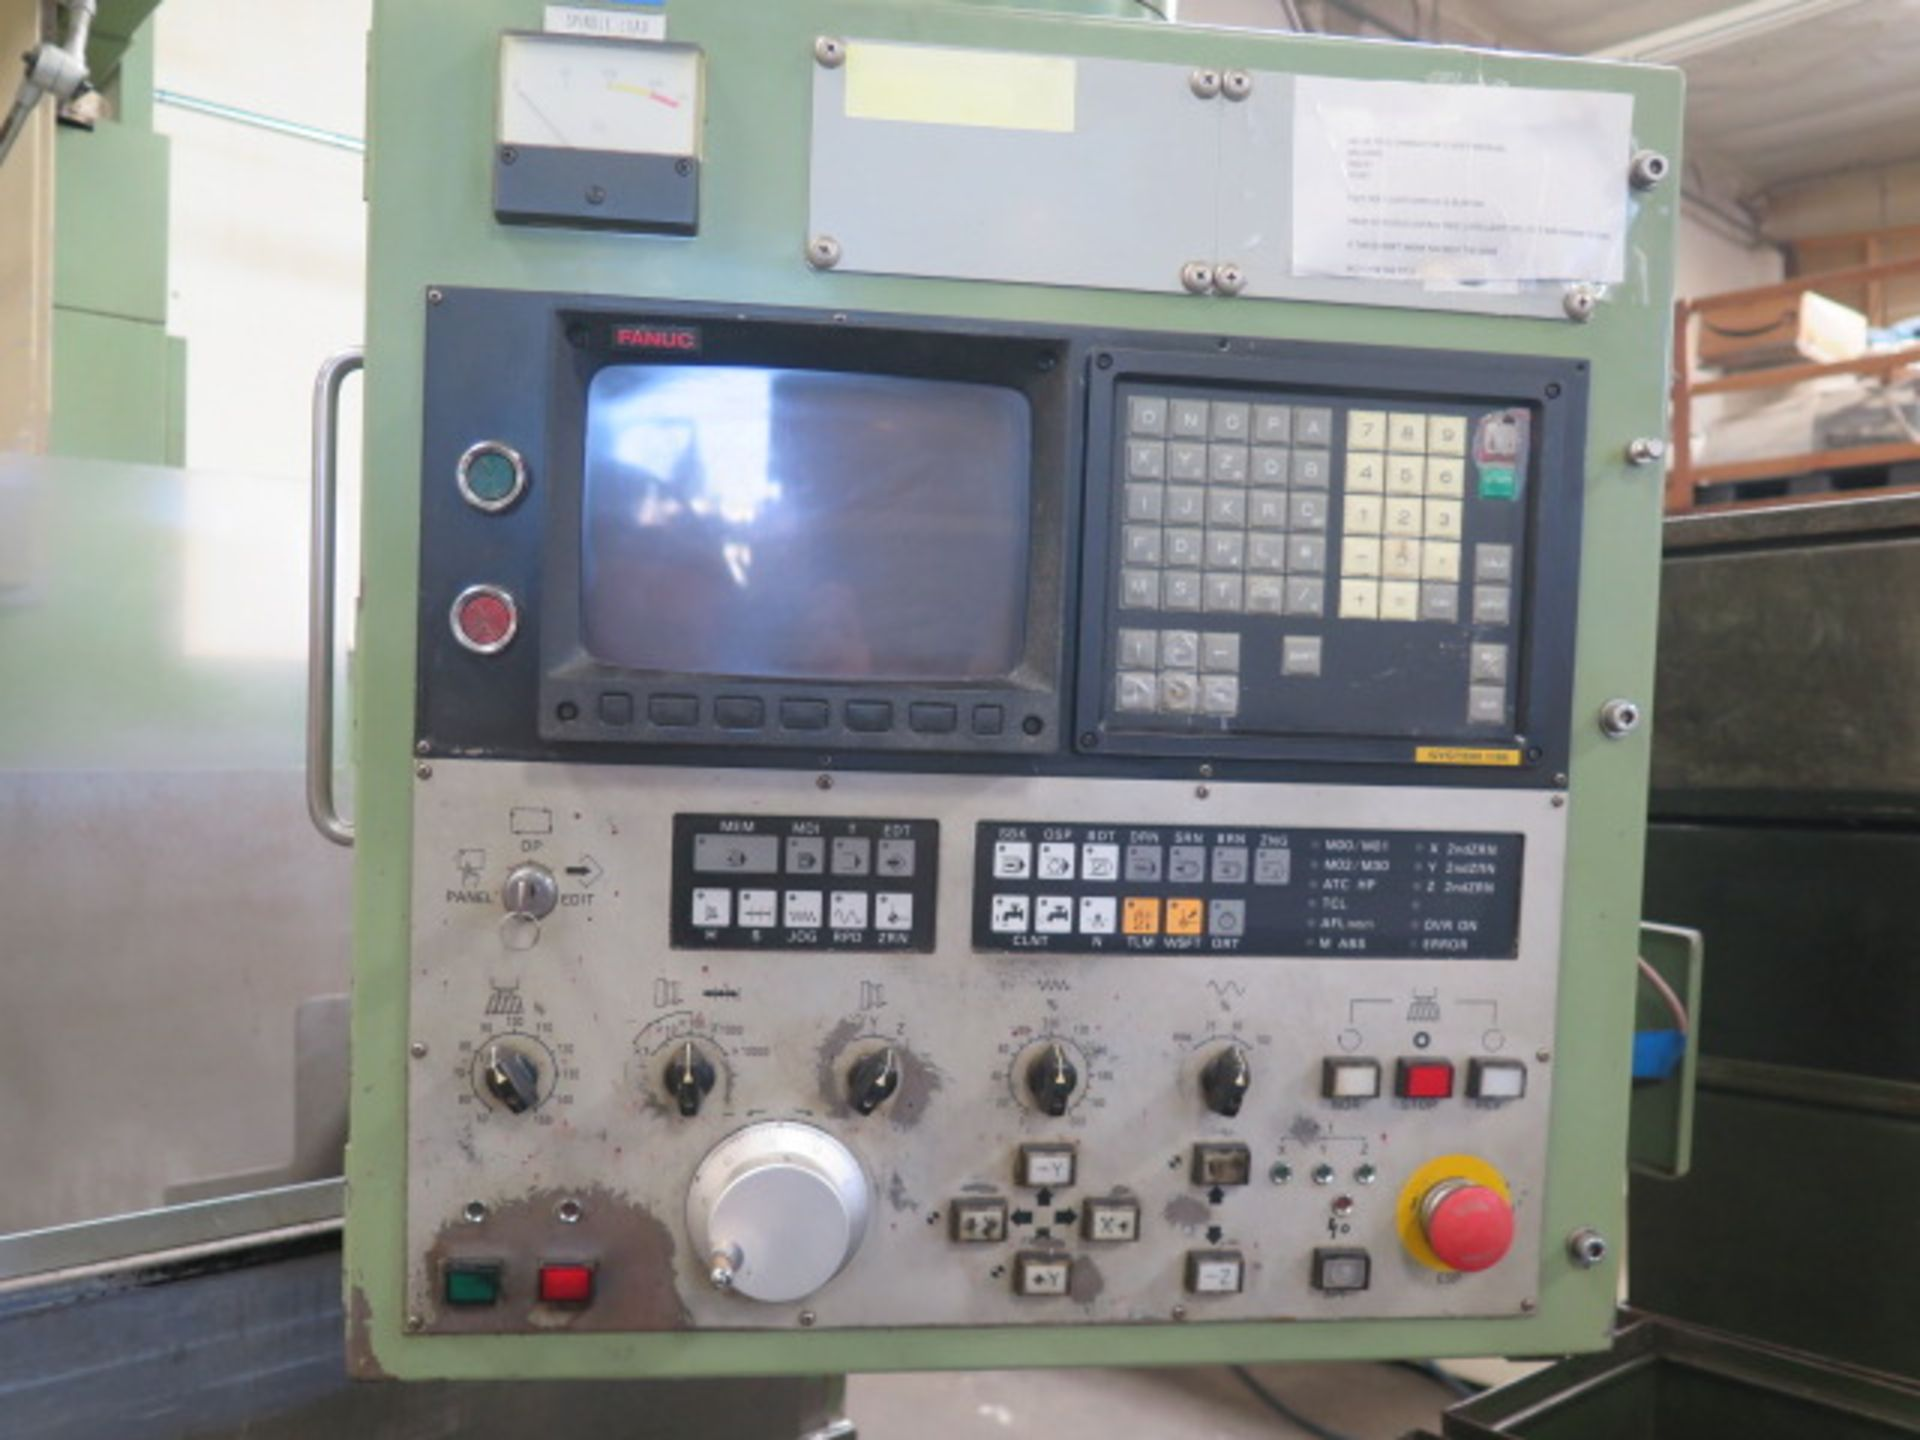 Mori Seiki MV-55 CNC Vertical Machining Center s/n 576 w/ Fanuc System 11M Controls, 24-Station ATC, - Image 4 of 13